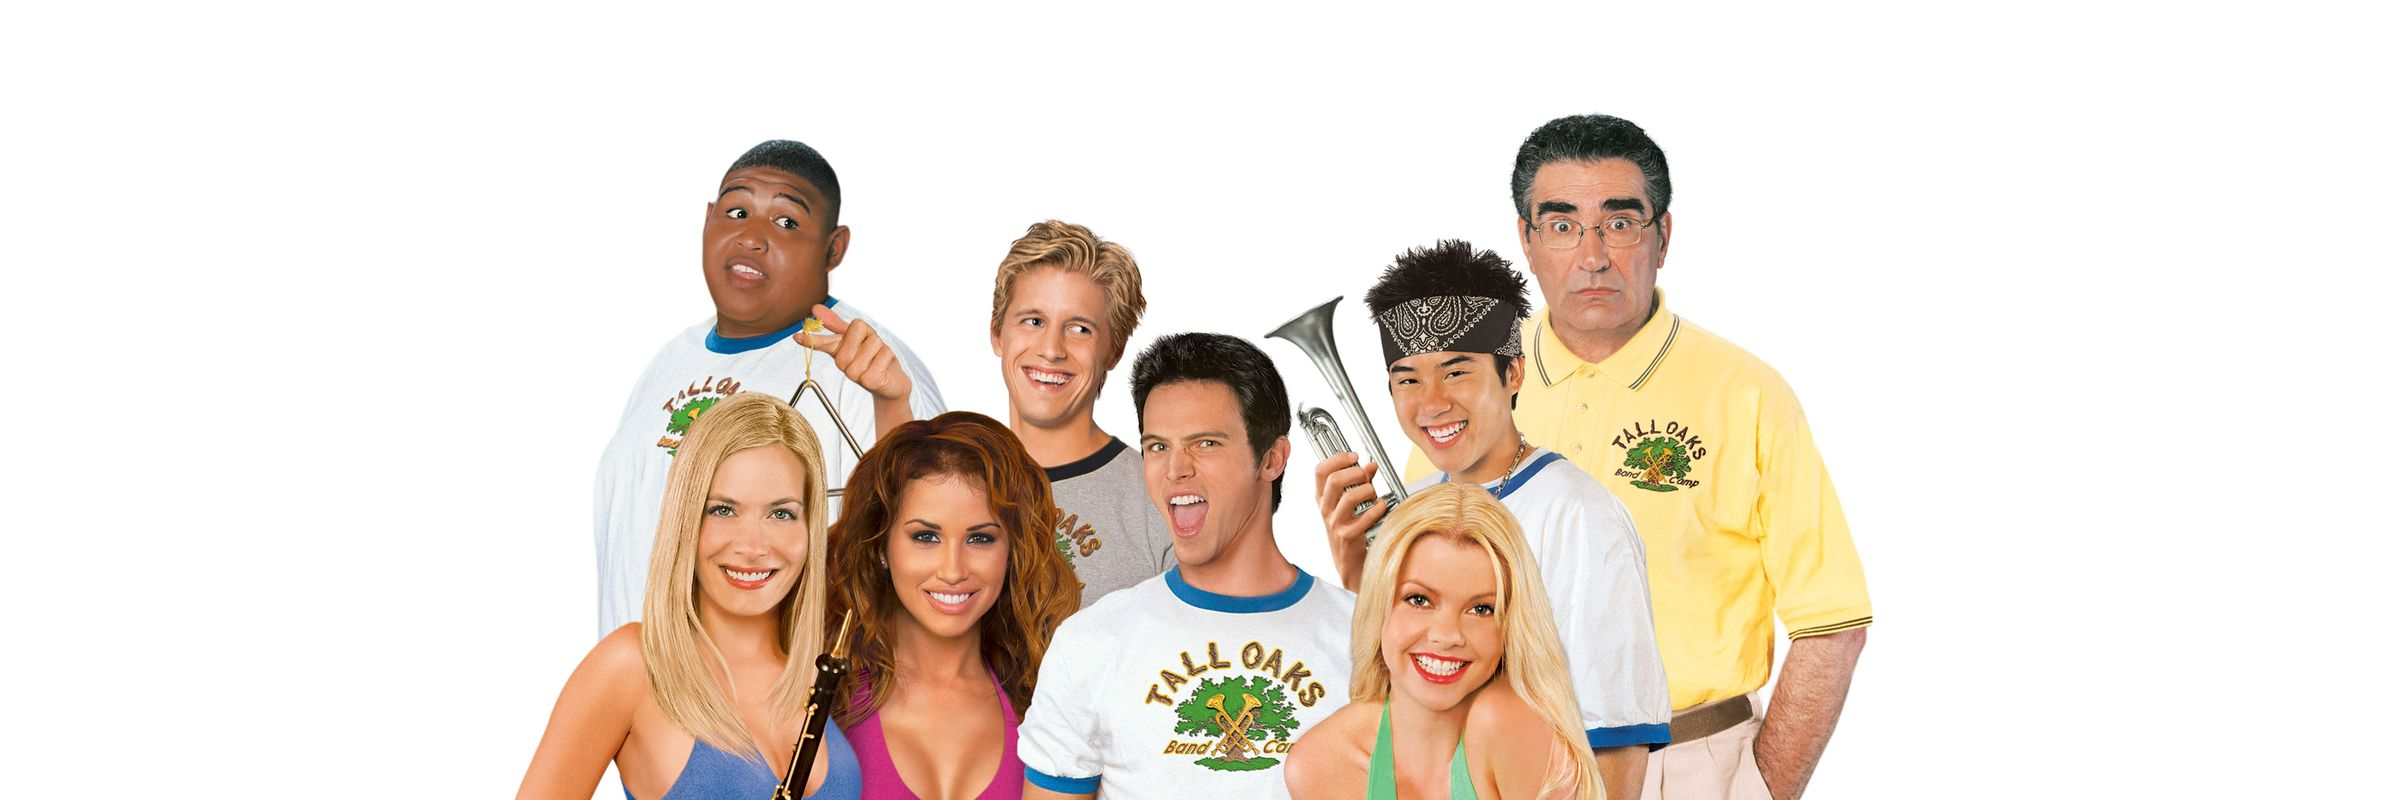 100 Photos of American Pie Band Camp Full Movie